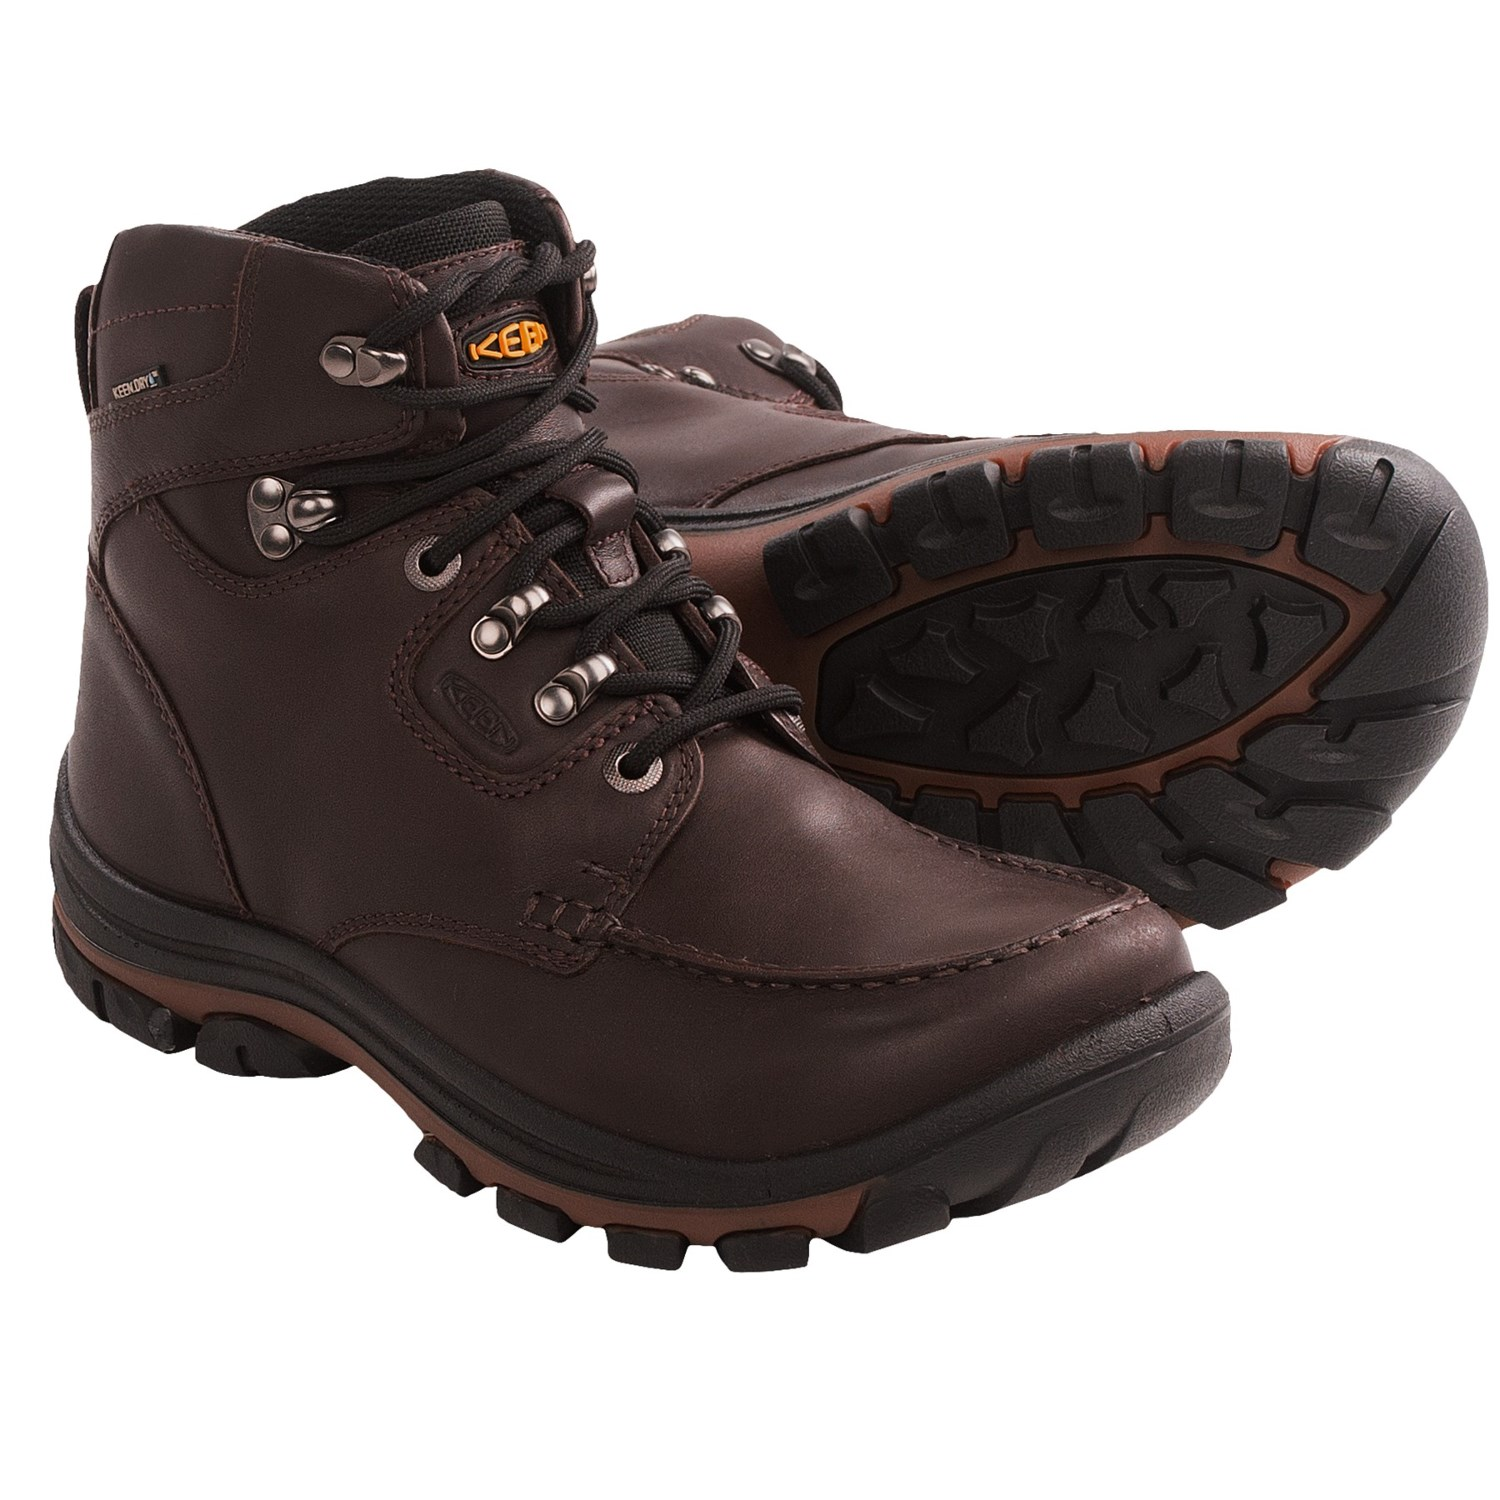 Keen Shoes Discounted